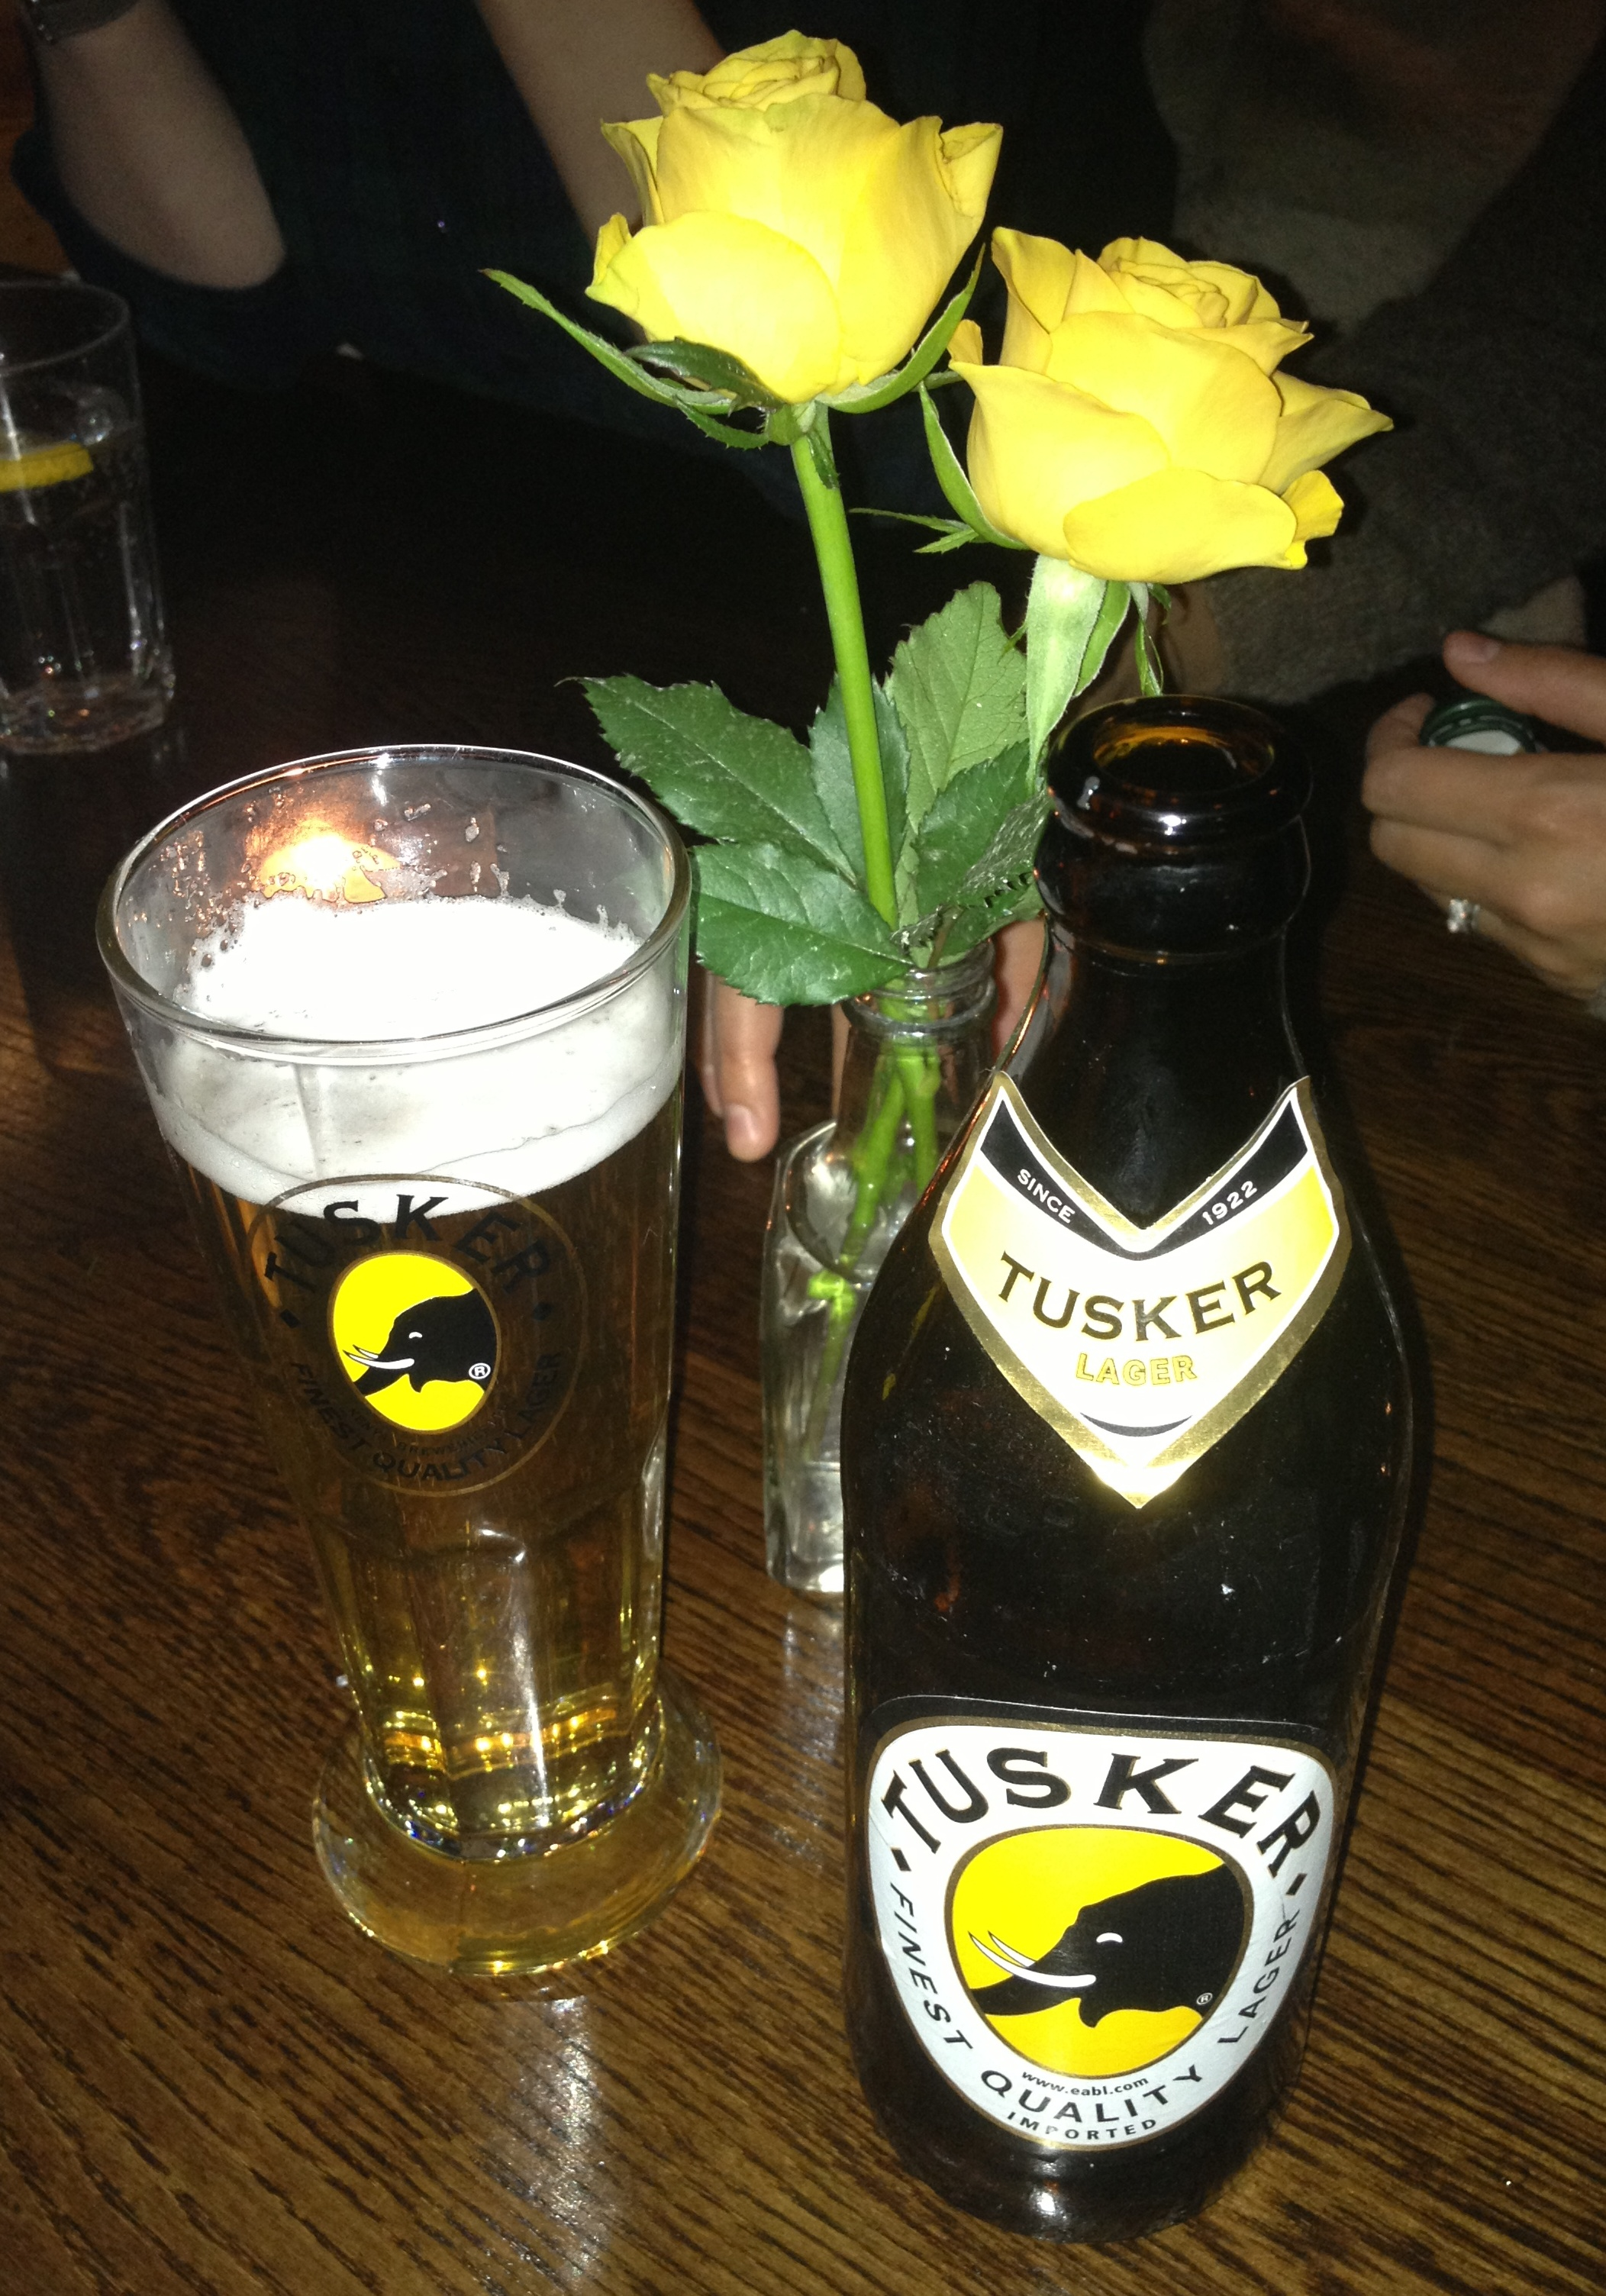 Adulis Tusker Lager and flowers - kenningtonrunoff.com